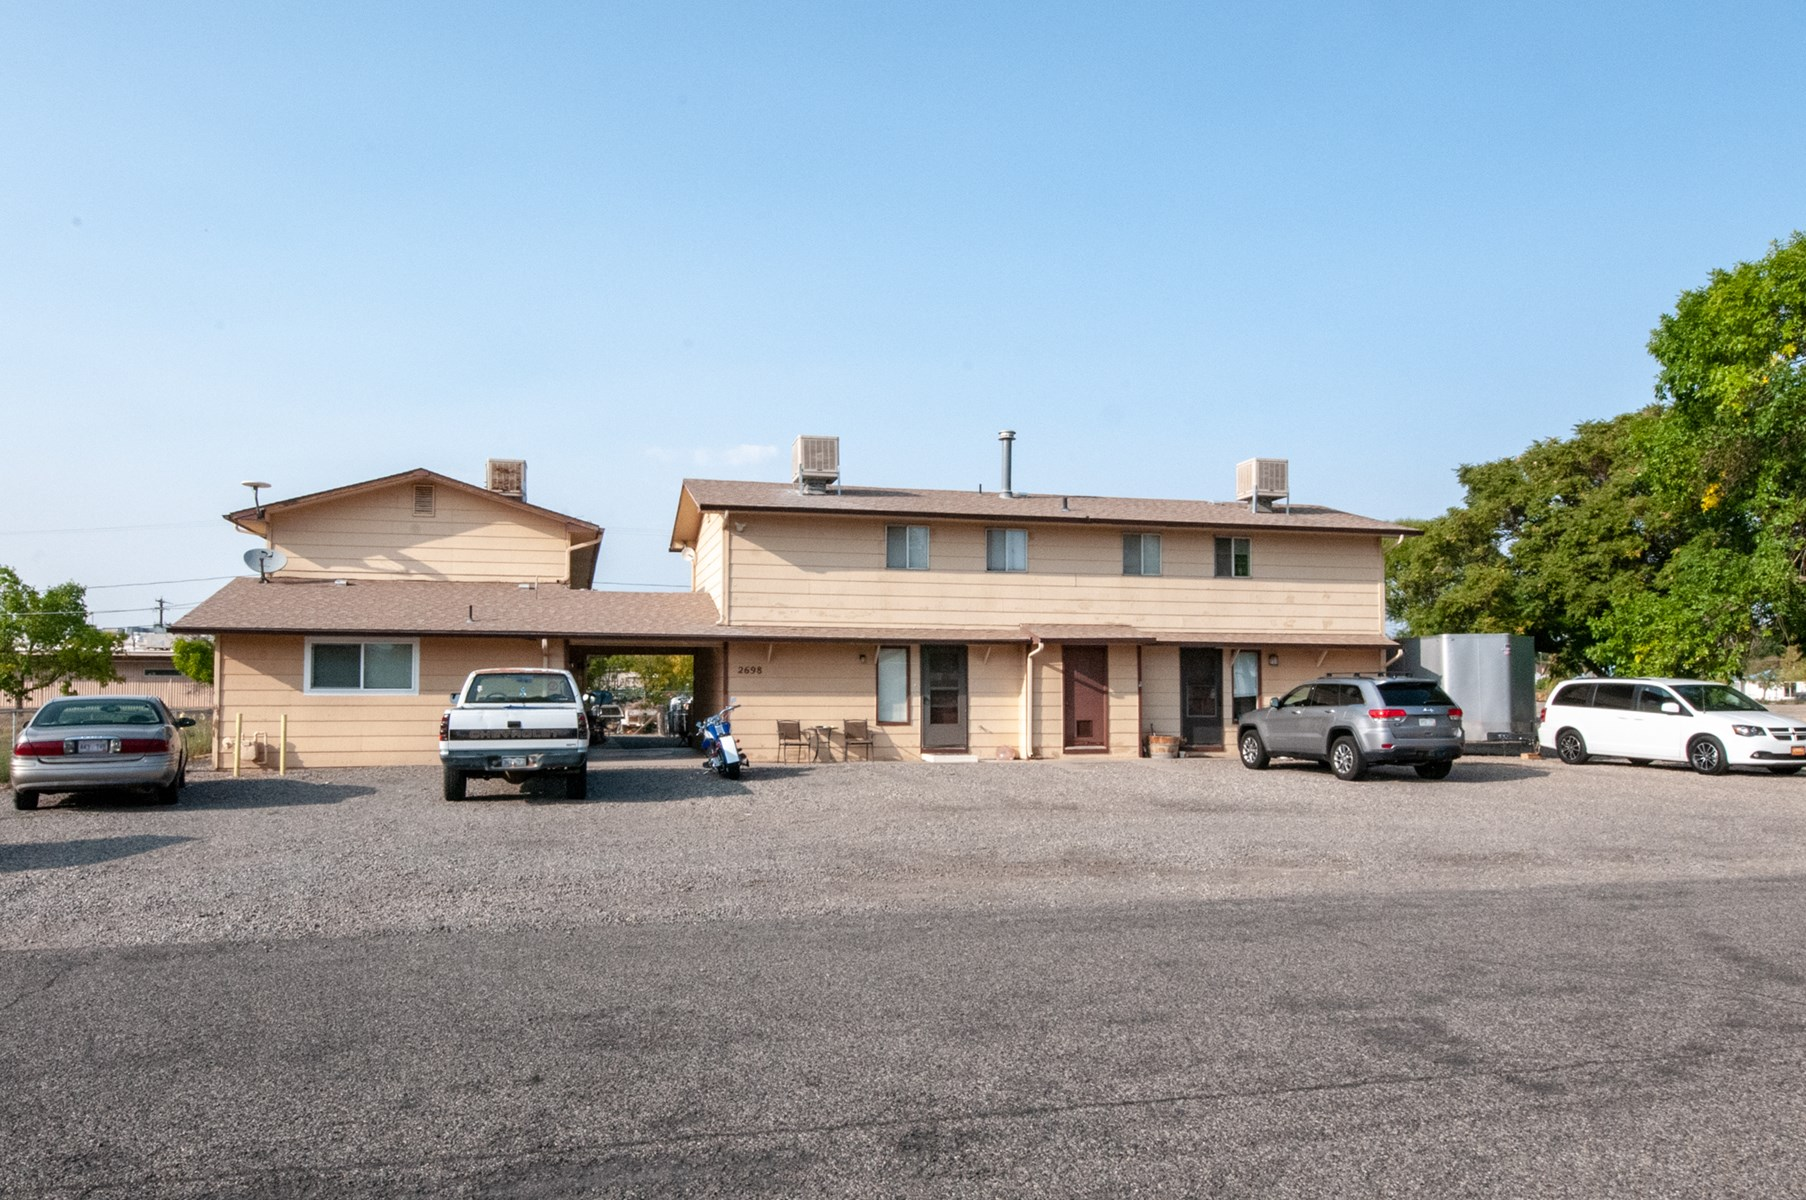 Four-Plex for Sale in Colorado, Investment Opportunity